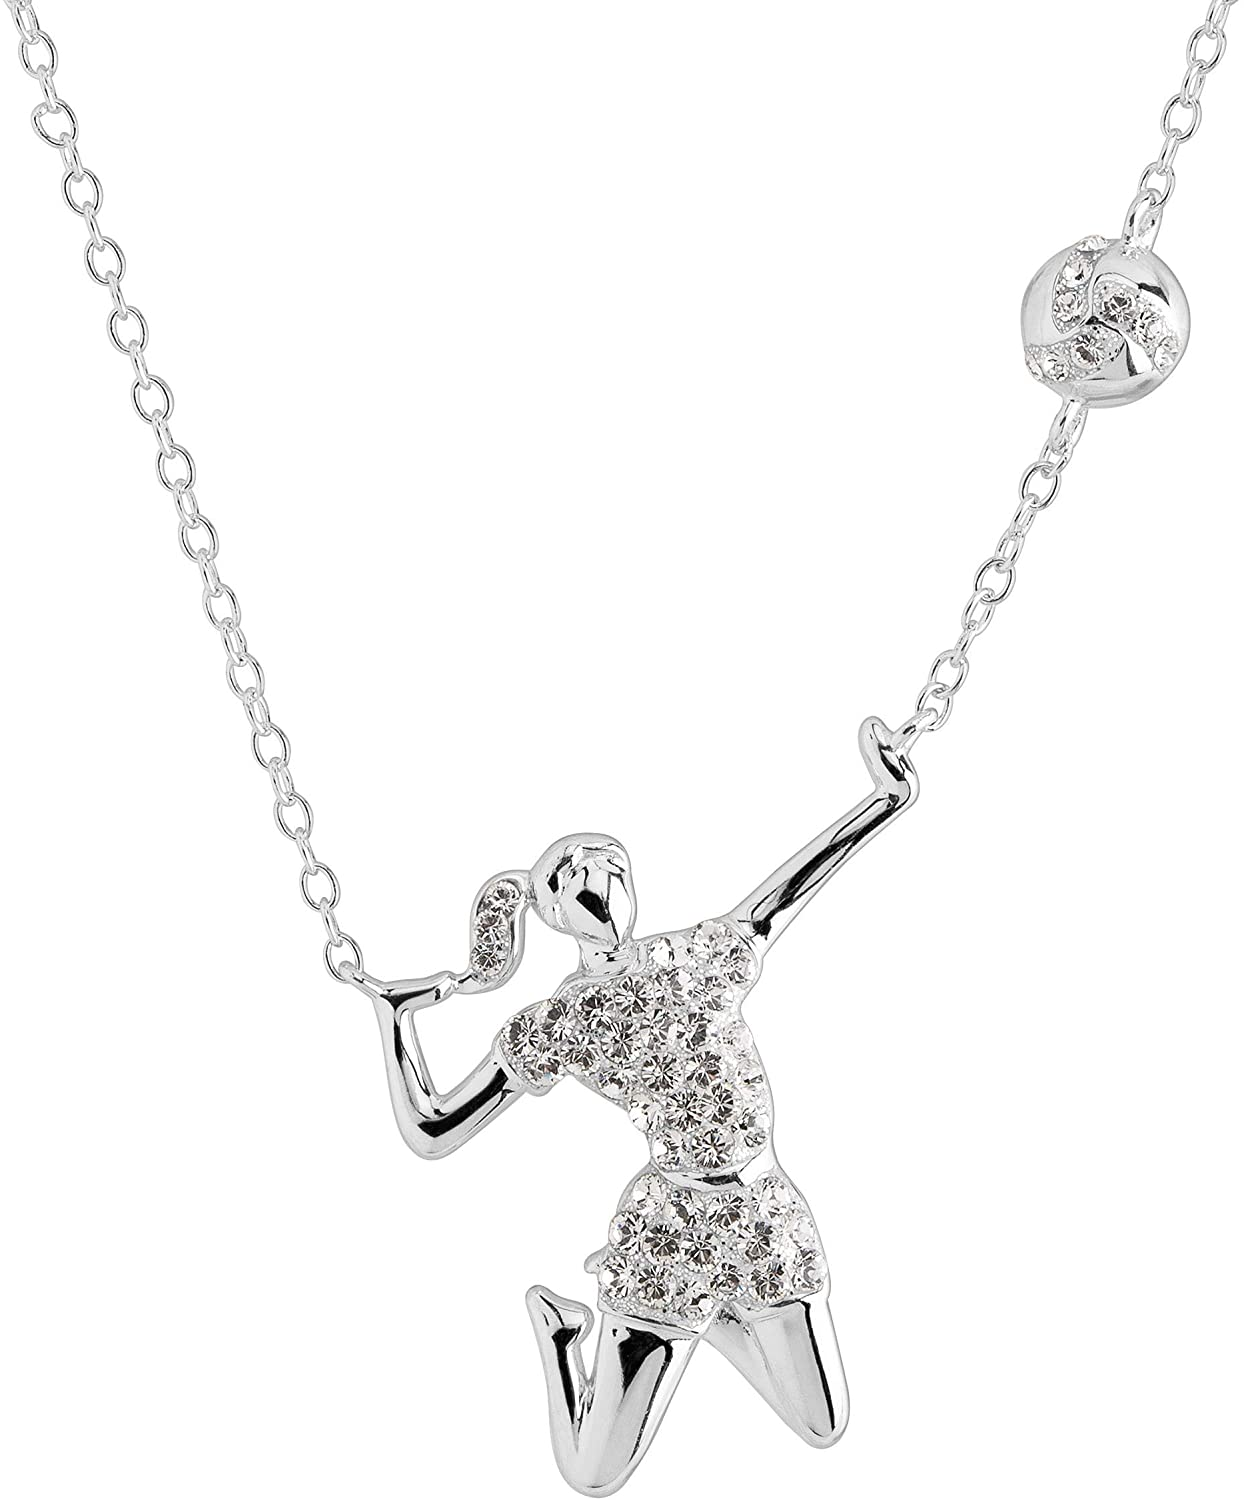 Crystaluxe Volleyball Player Necklace with Swarovski Crystals in Sterling Silver, 16